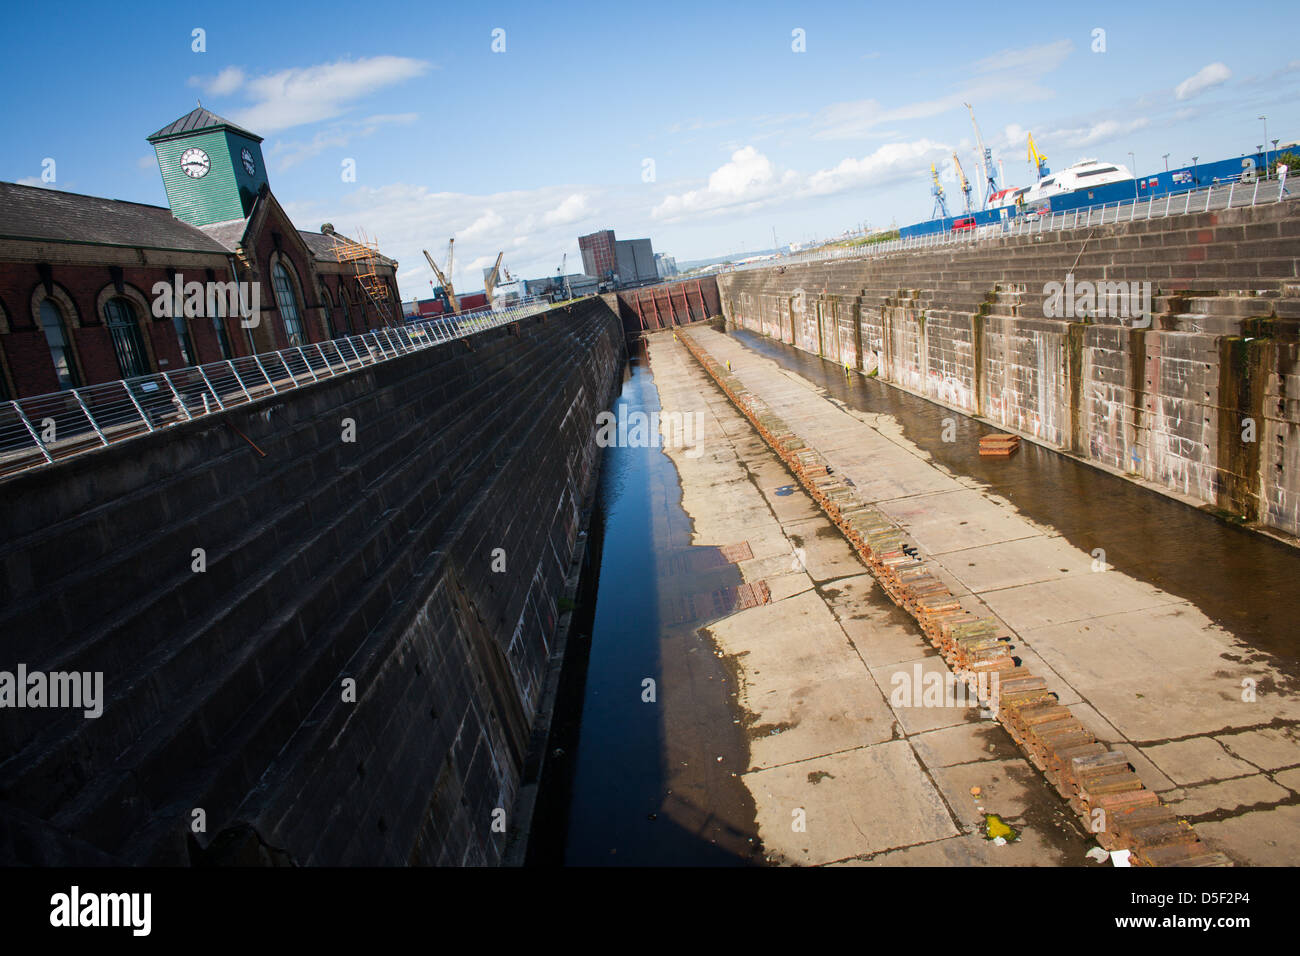 The dry dock where the Titanic was finished, in Belfast, Northern Ireland - Stock Image